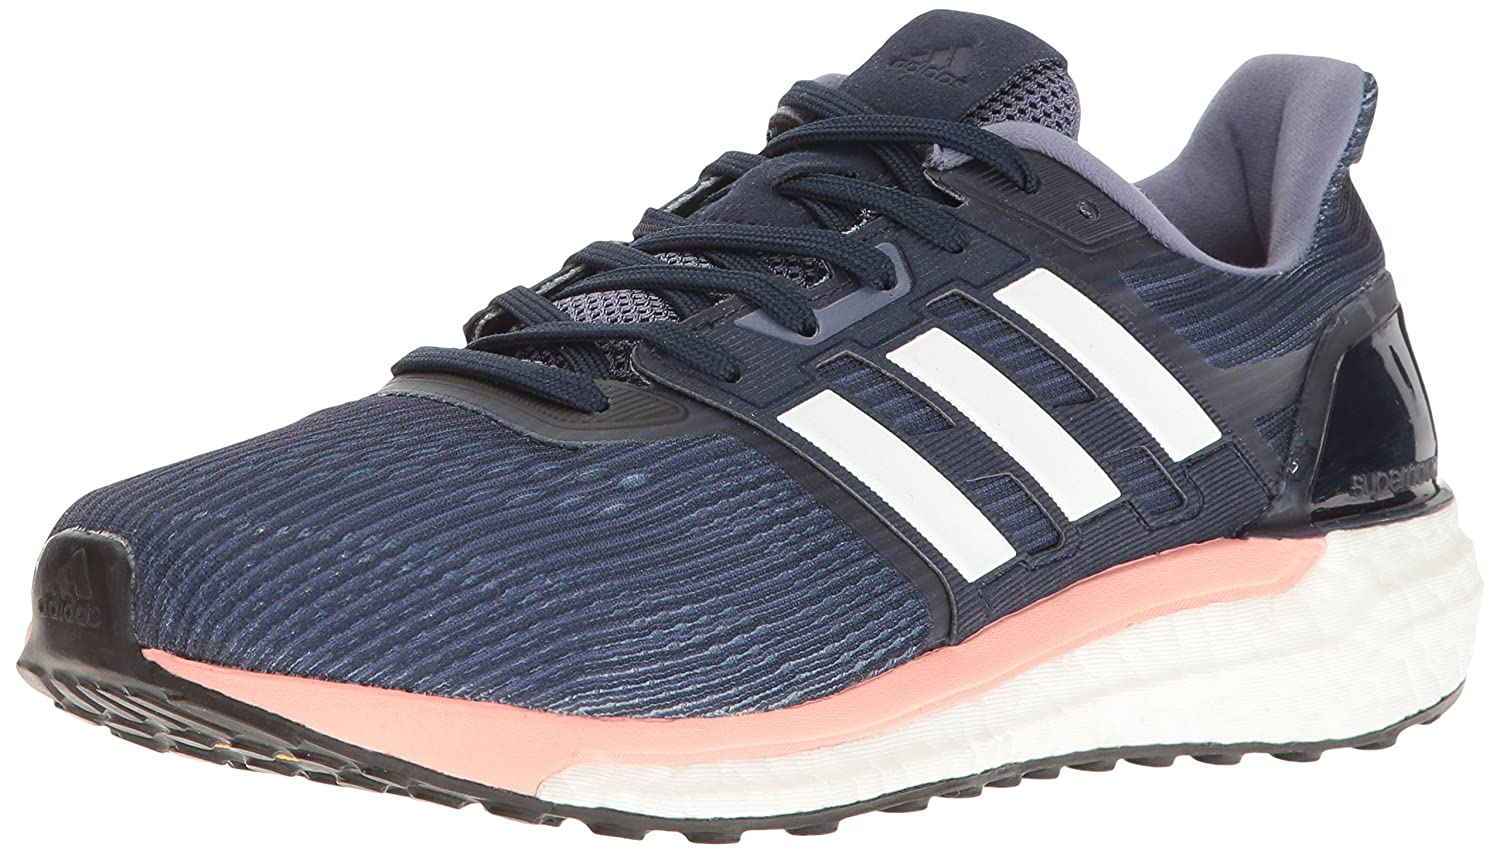 adidas Women's Supernova W Running Shoe Grey B01H68TFTU 10.5 M US|Midnight Grey Shoe White/Still Breeze F 6ba208